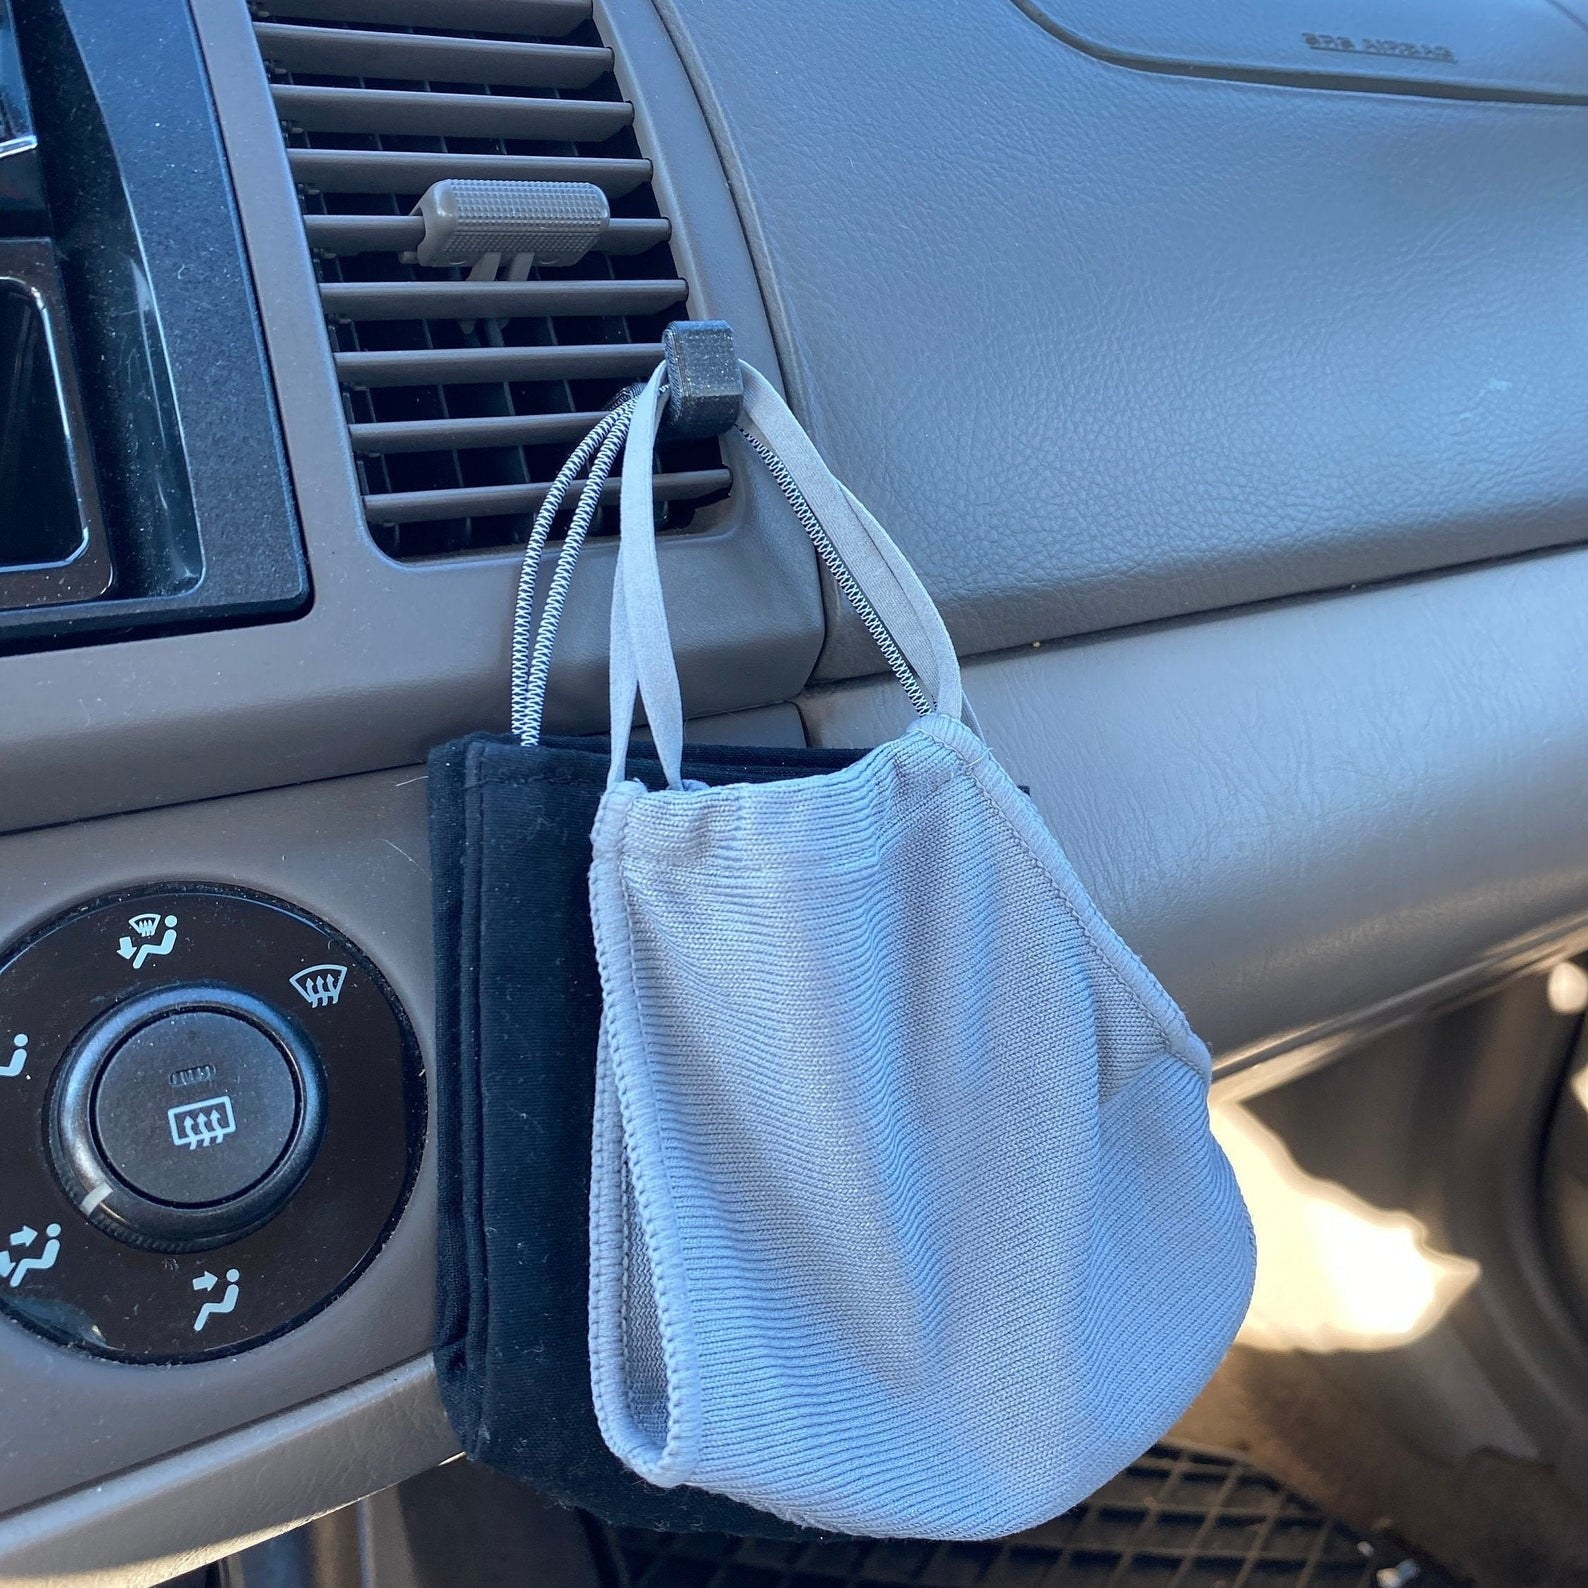 A small gray clip on an air conditioning vent in a car with masks hanging from it